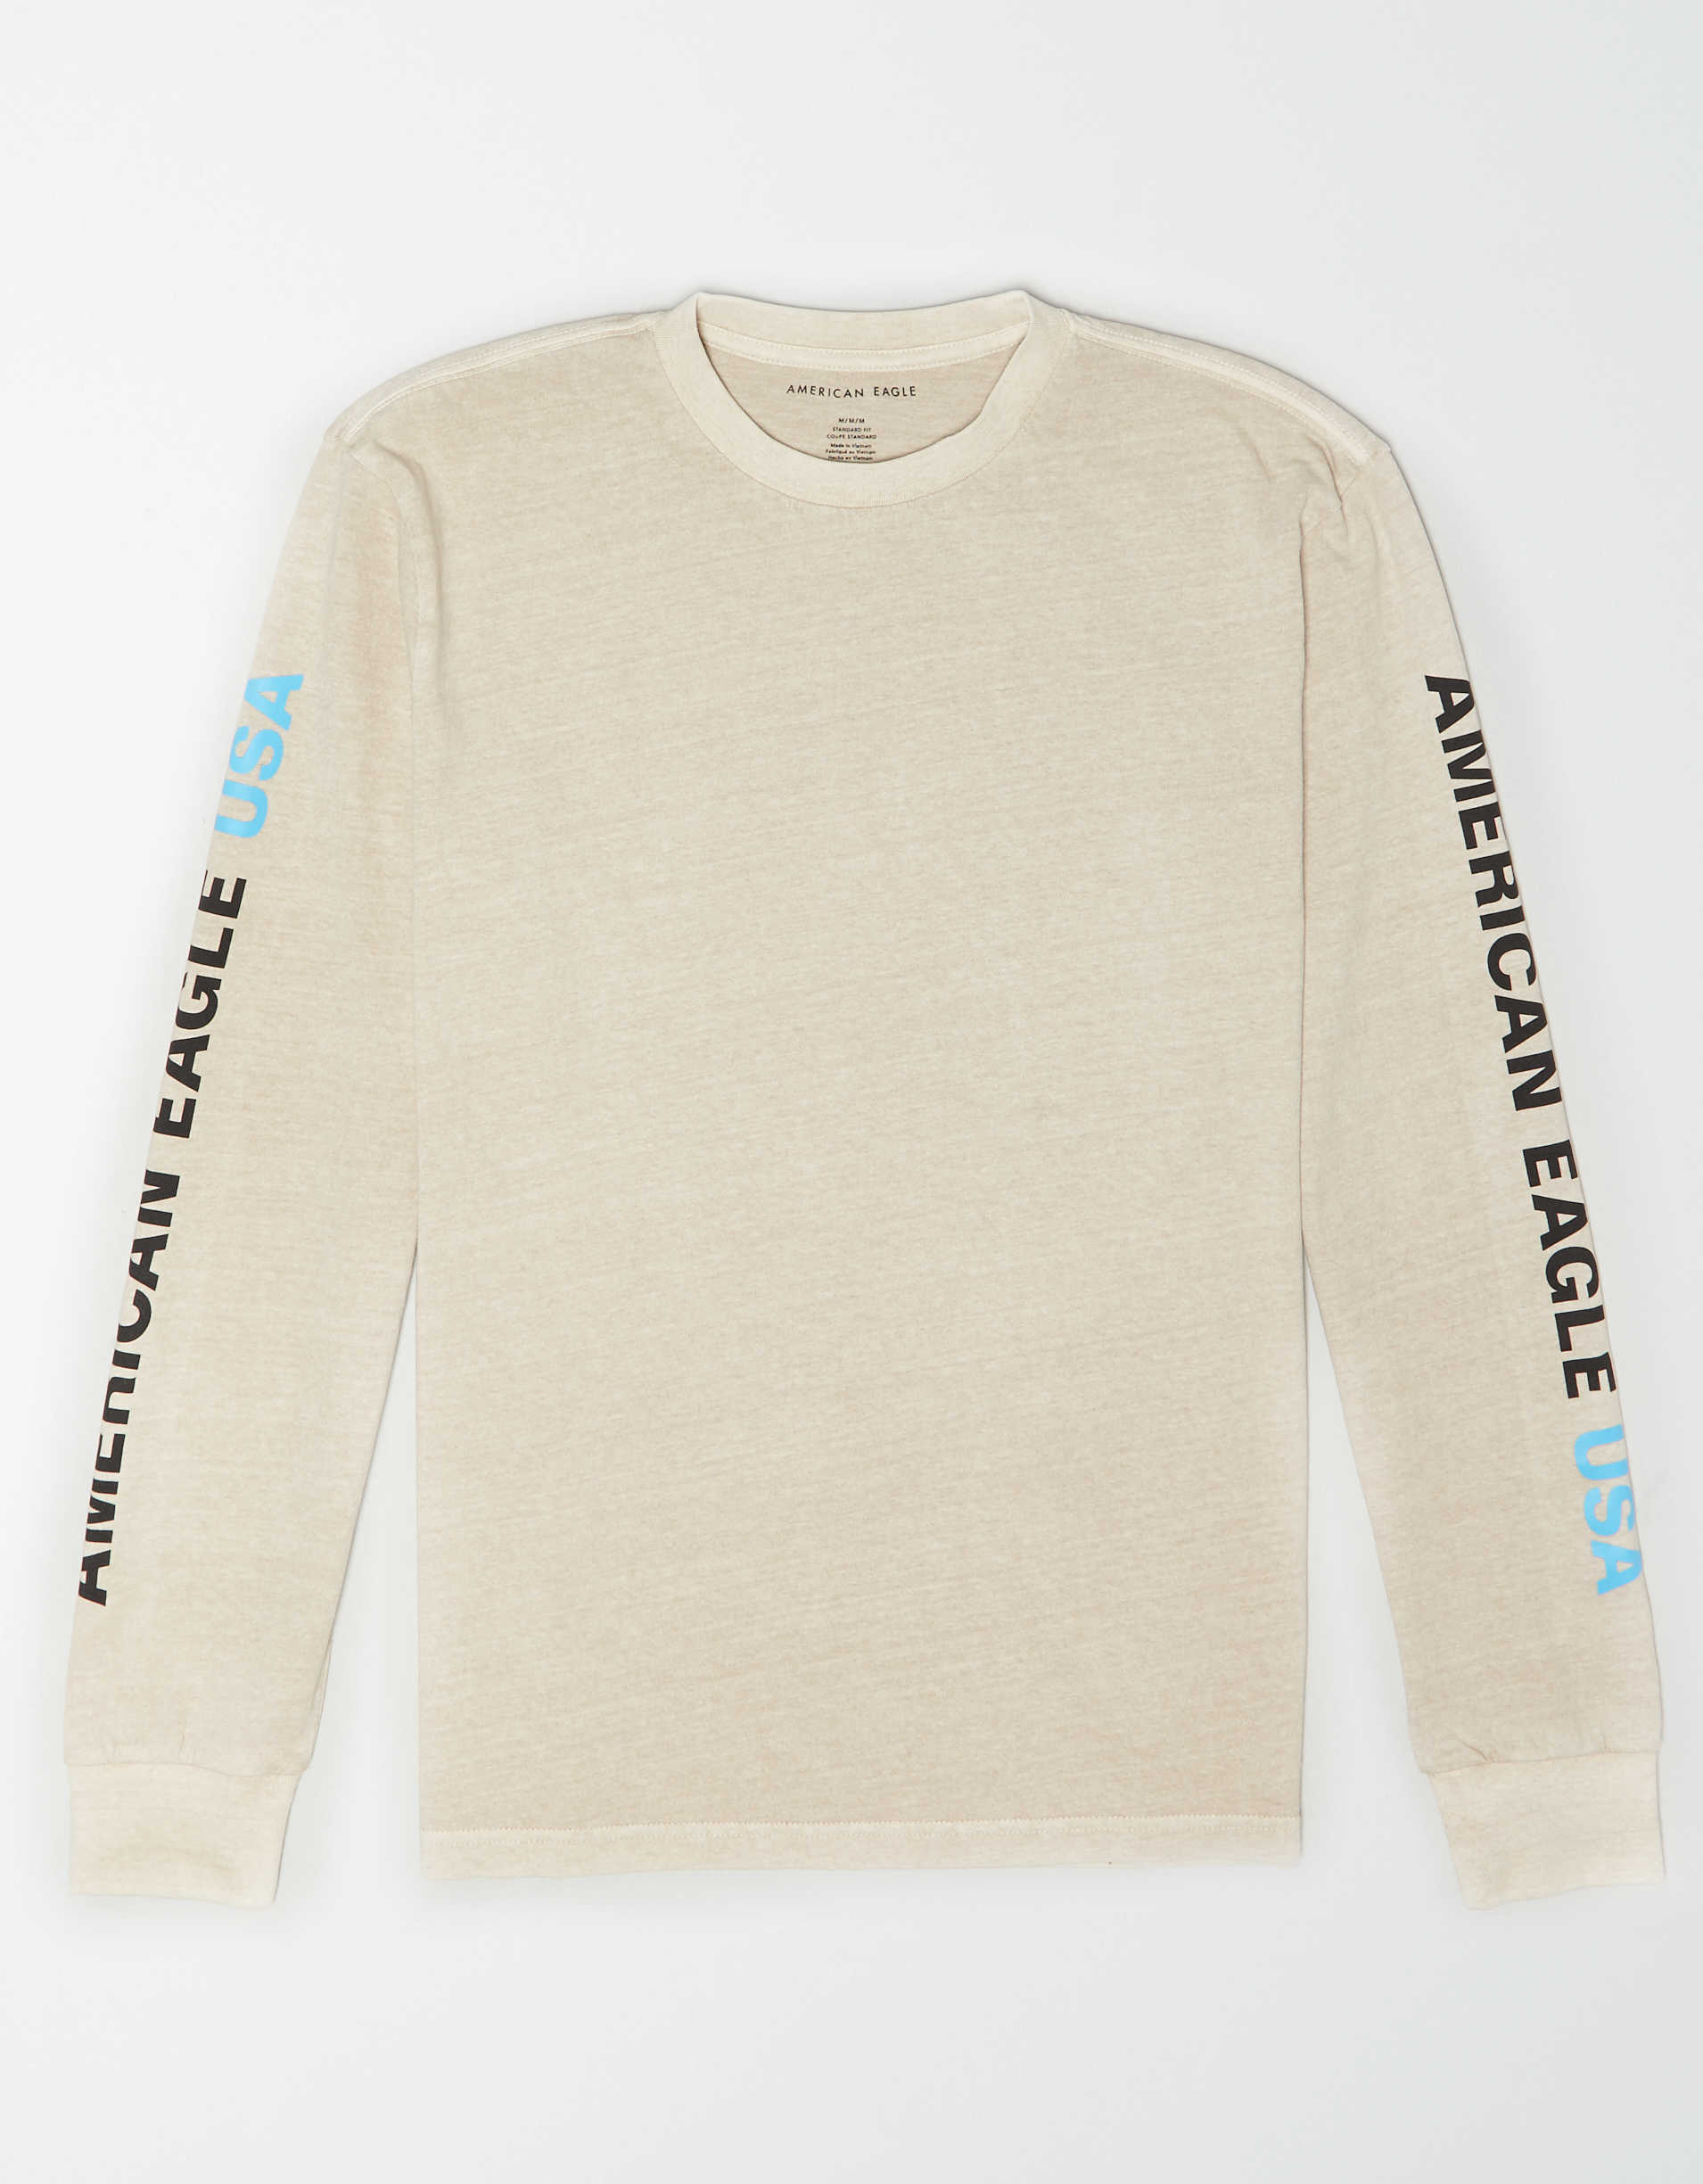 AE Vintage Wash Long-Sleeve Graphic T-Shirt